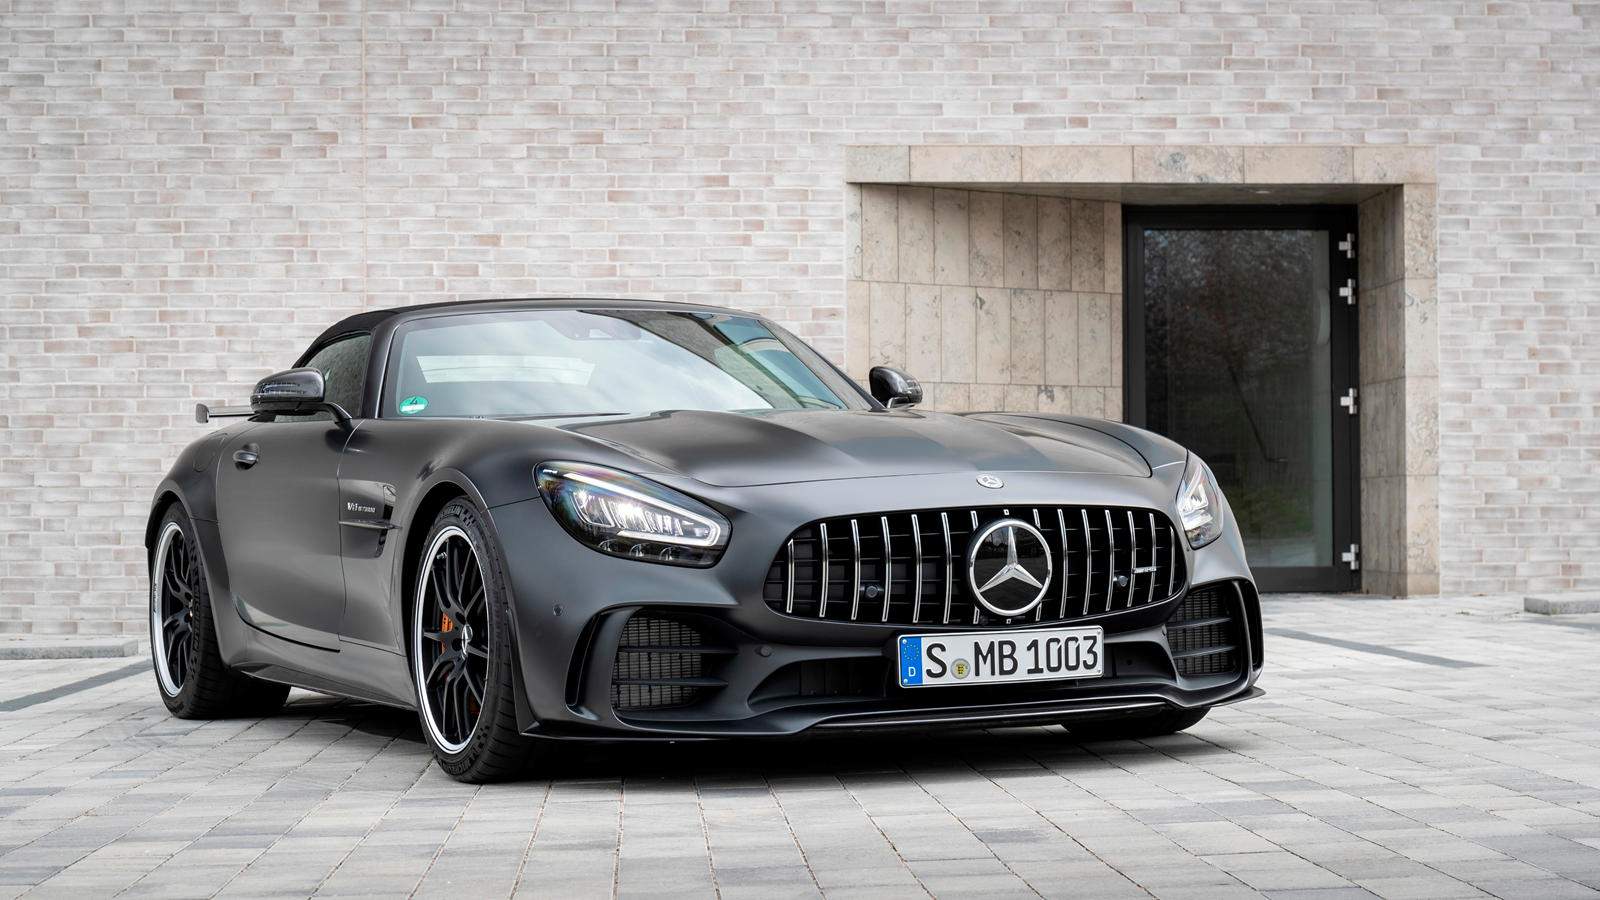 2020 Mercedes Amg Gt R Roadster Review Trims Specs Price New Interior Features Exterior Design And Specifications Carbuzz